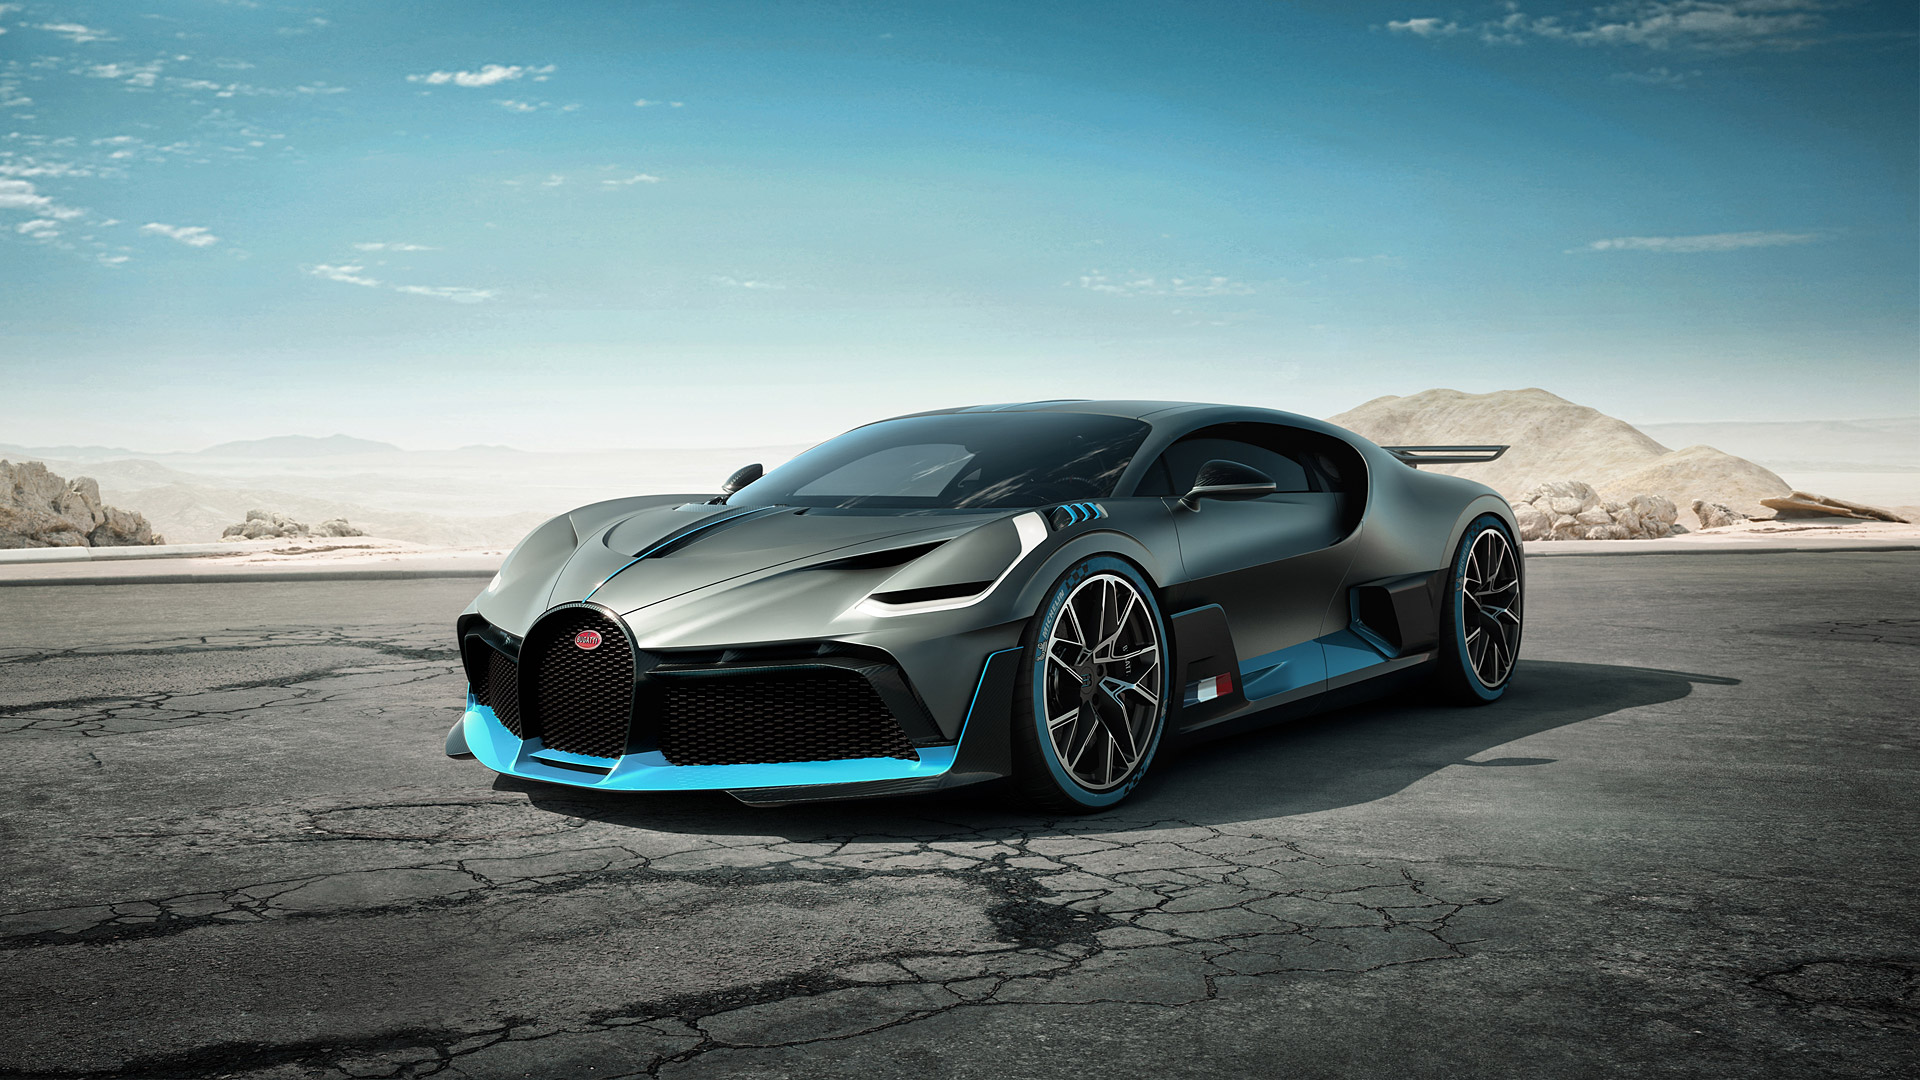 2019 Bugatti Divo Wallpapers HD Images   WSupercars 1920x1080